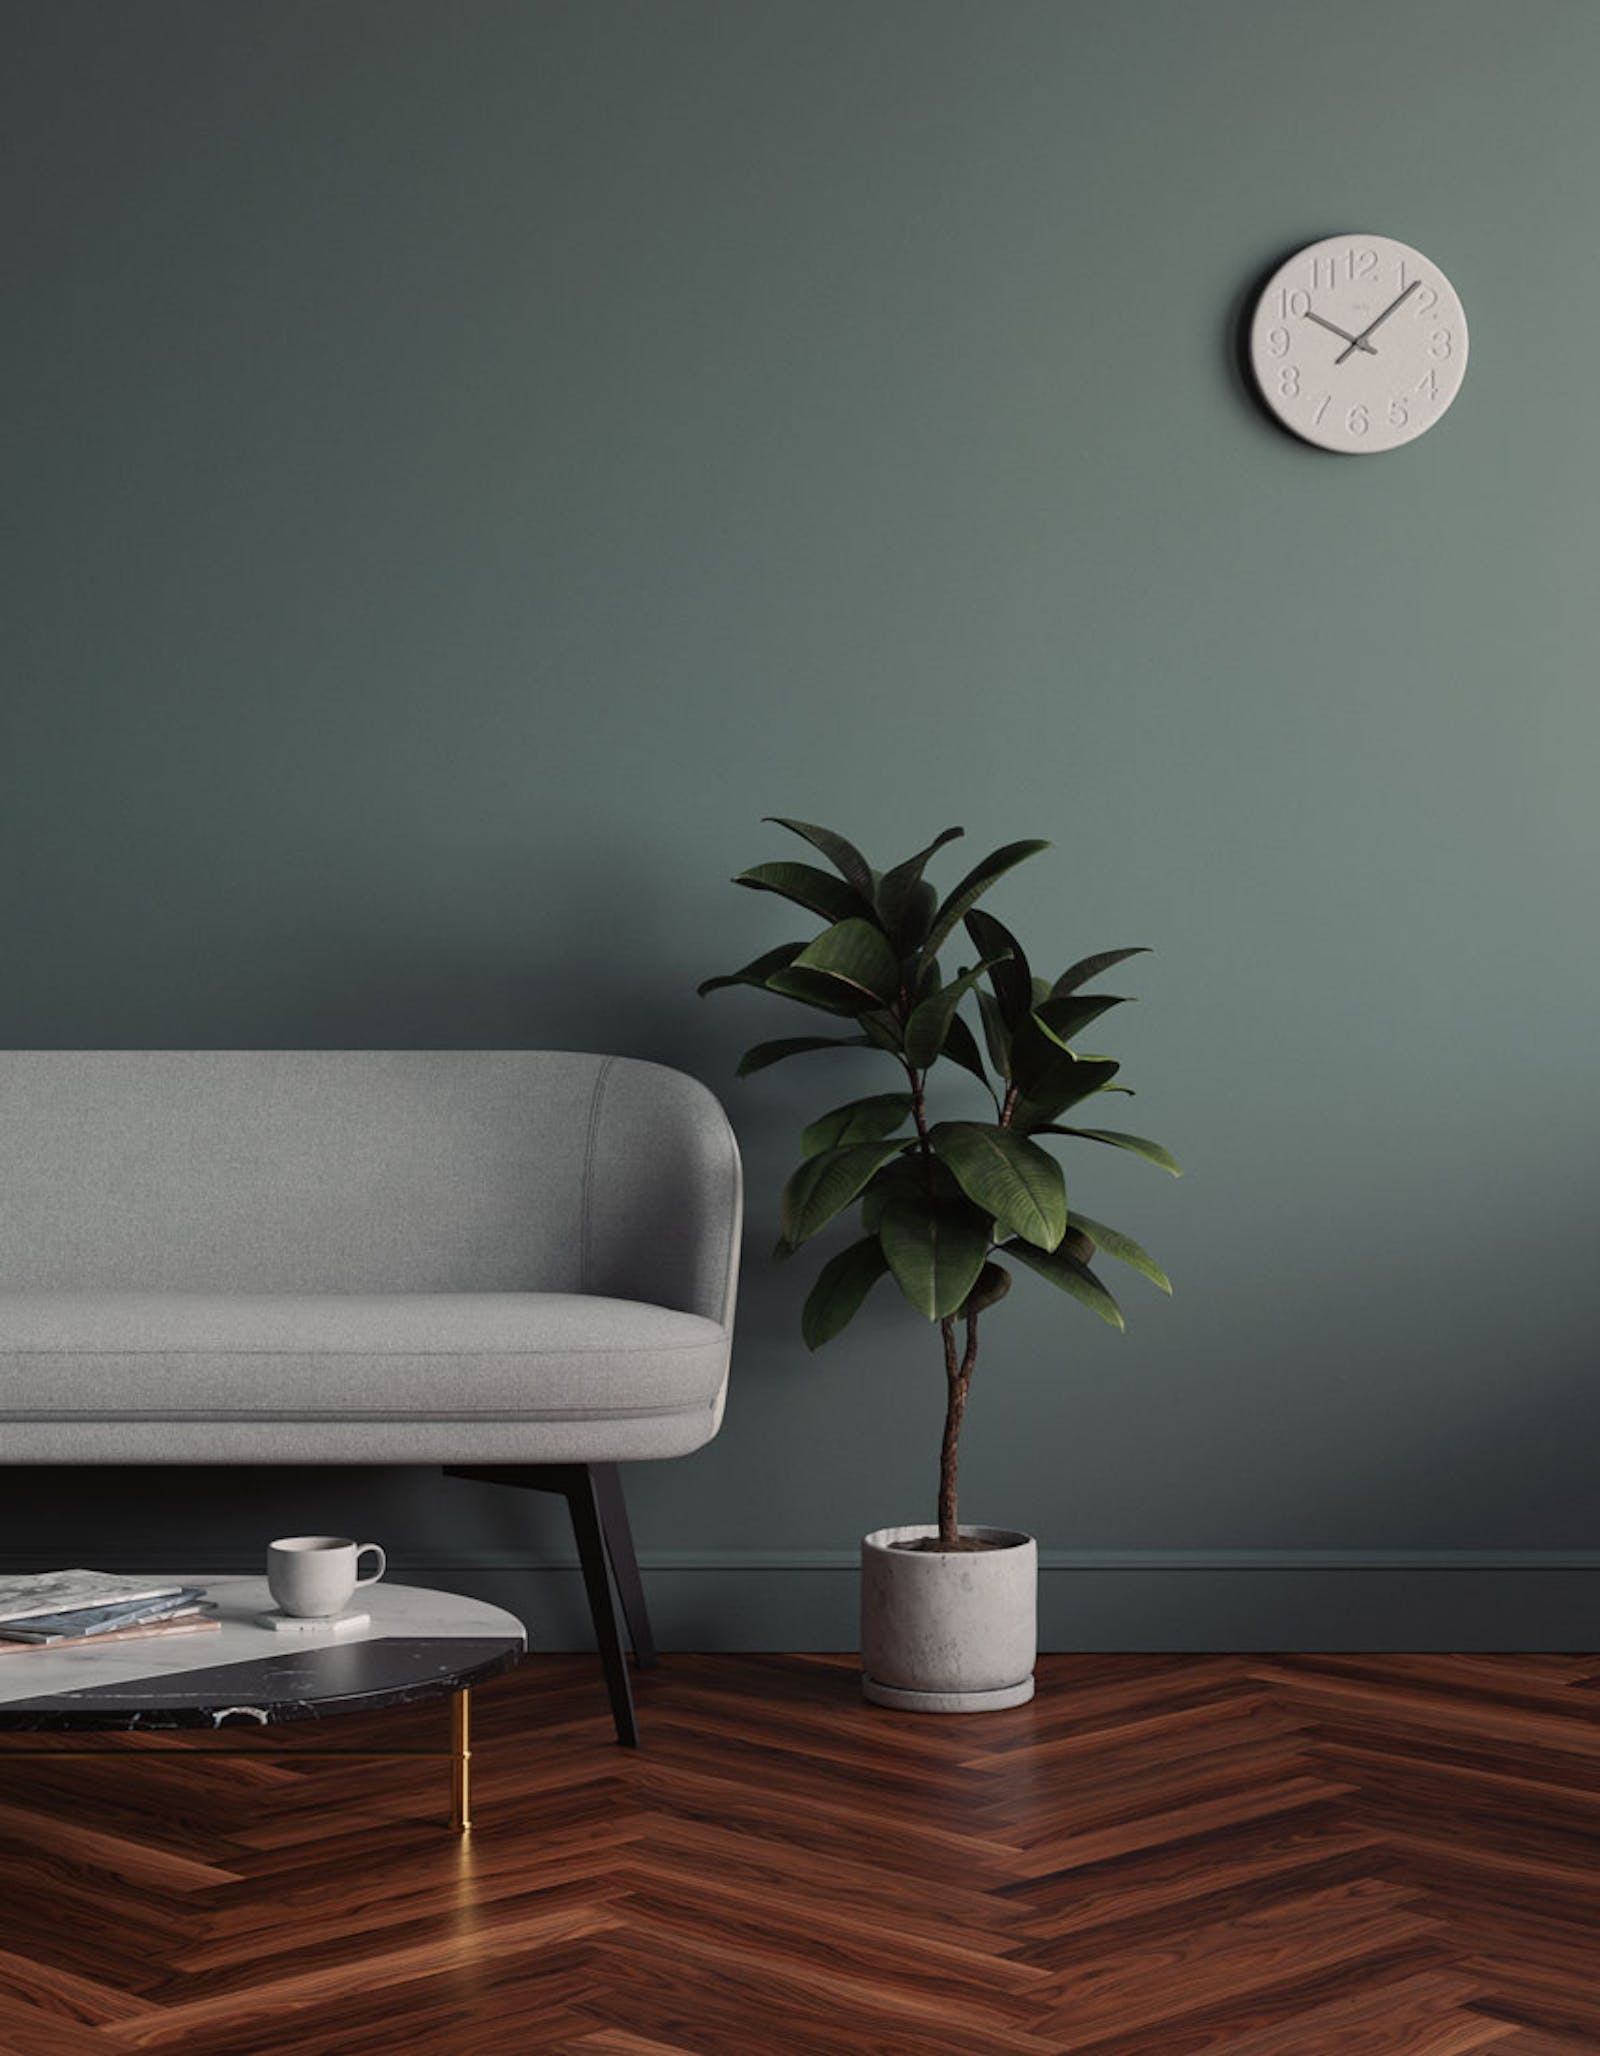 Lounge room scene with green 03 walls, plant and neutral grey accessories